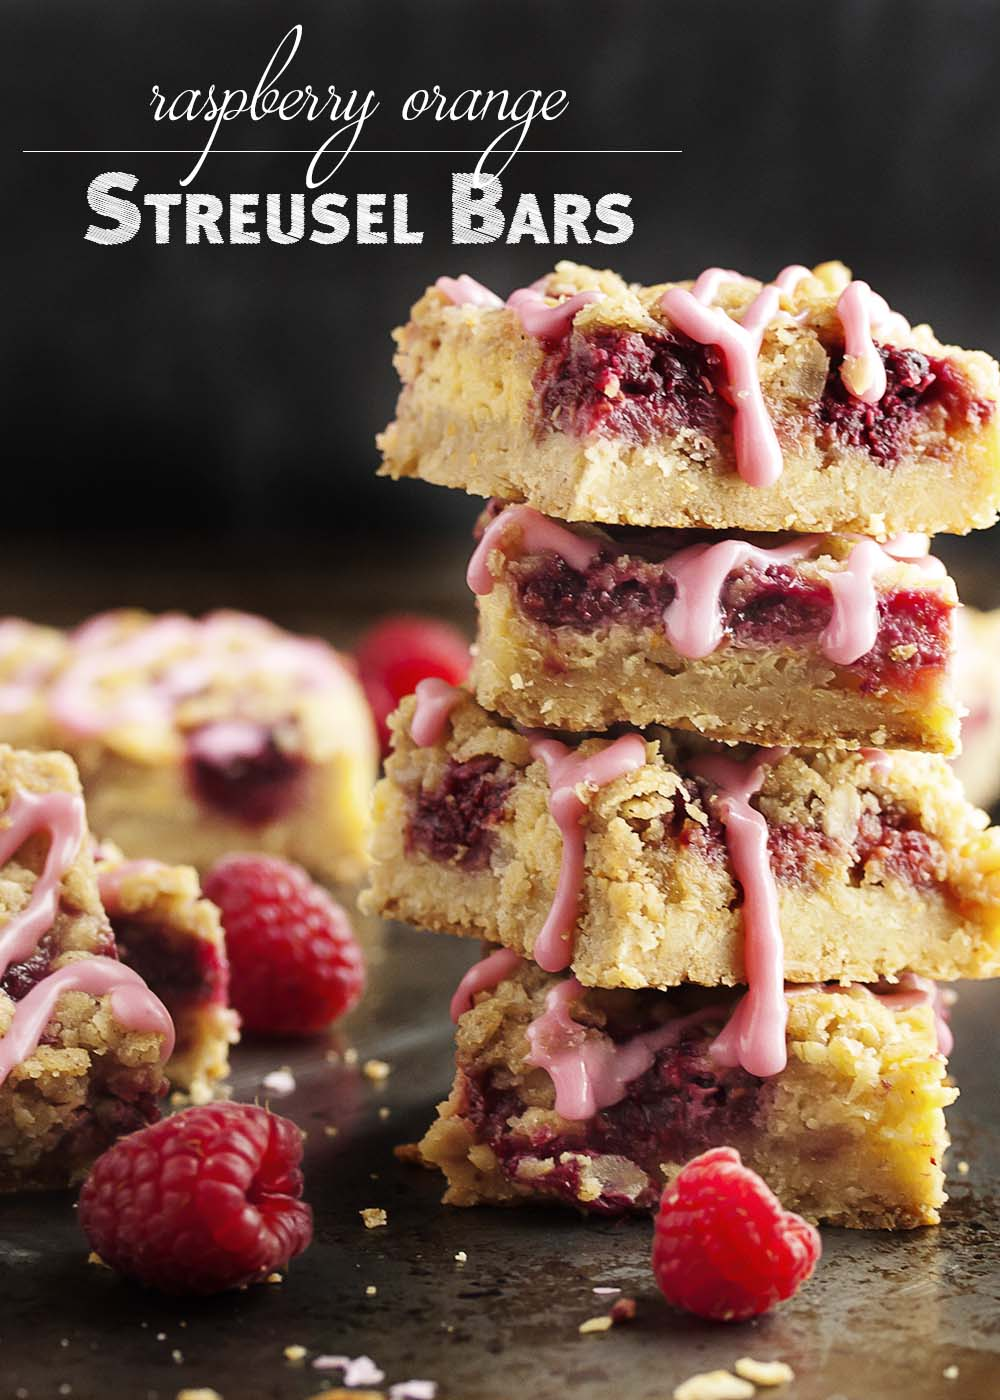 Raspberry Orange Streusel Bars - Raspberries pair with an orange cream filling and are topped by an oatmeal streusel in these flavorful and easy bar cookies. And, to make them extra fun and colorful, you can drizzle them with a raspberry glaze! | justalittlebitofbacon.com